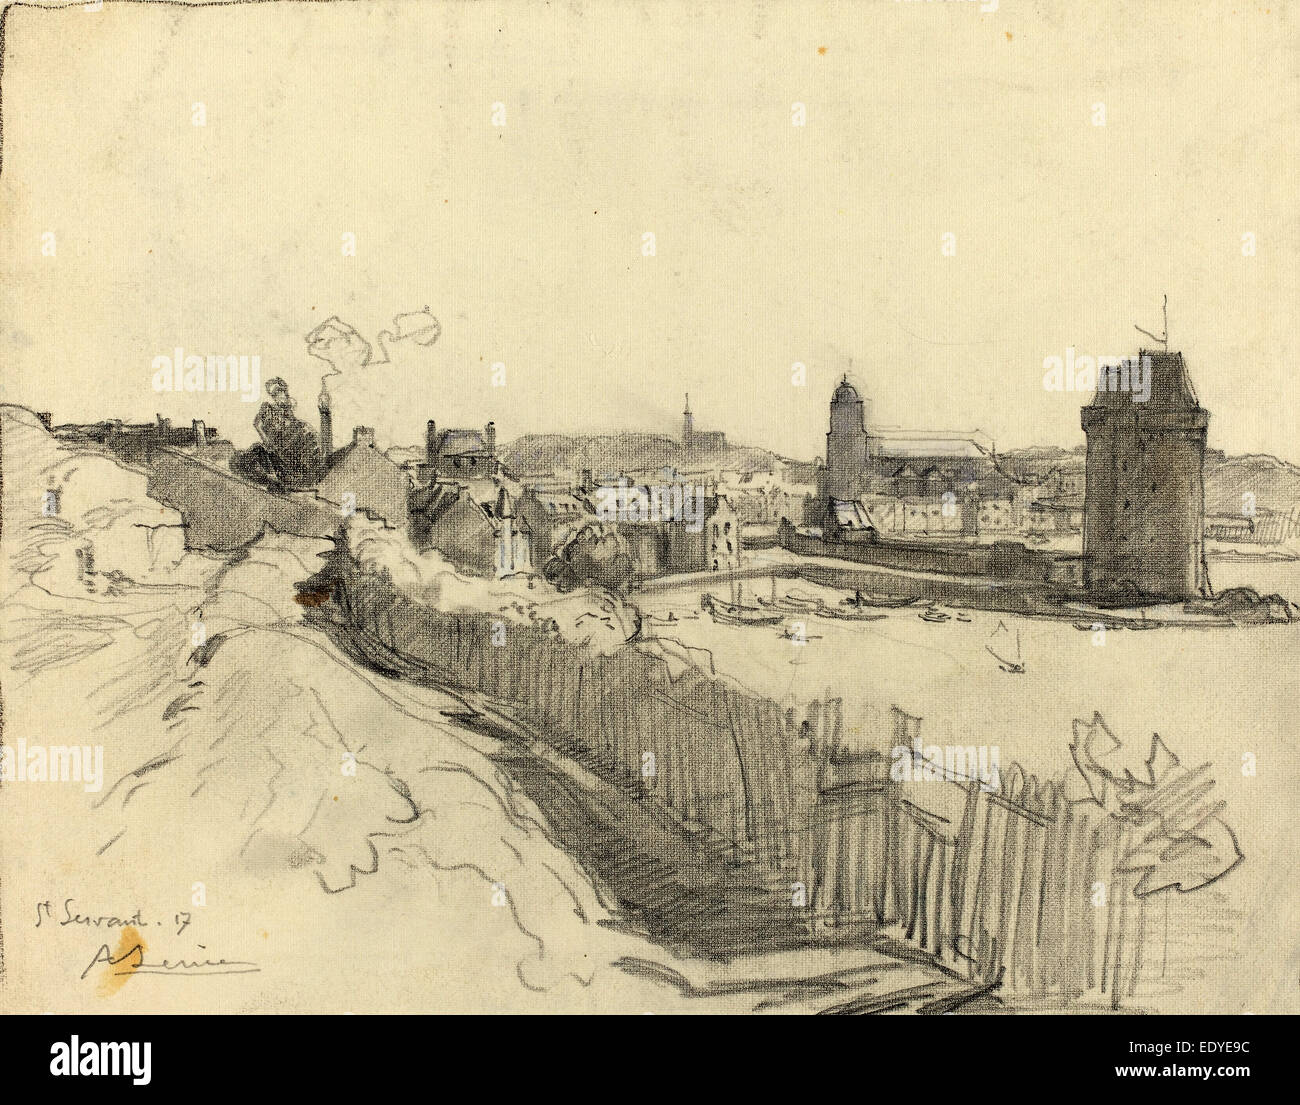 Auguste Lepère, Saint Servan, French, 1849 - 1918, 1917, graphite - Stock Image